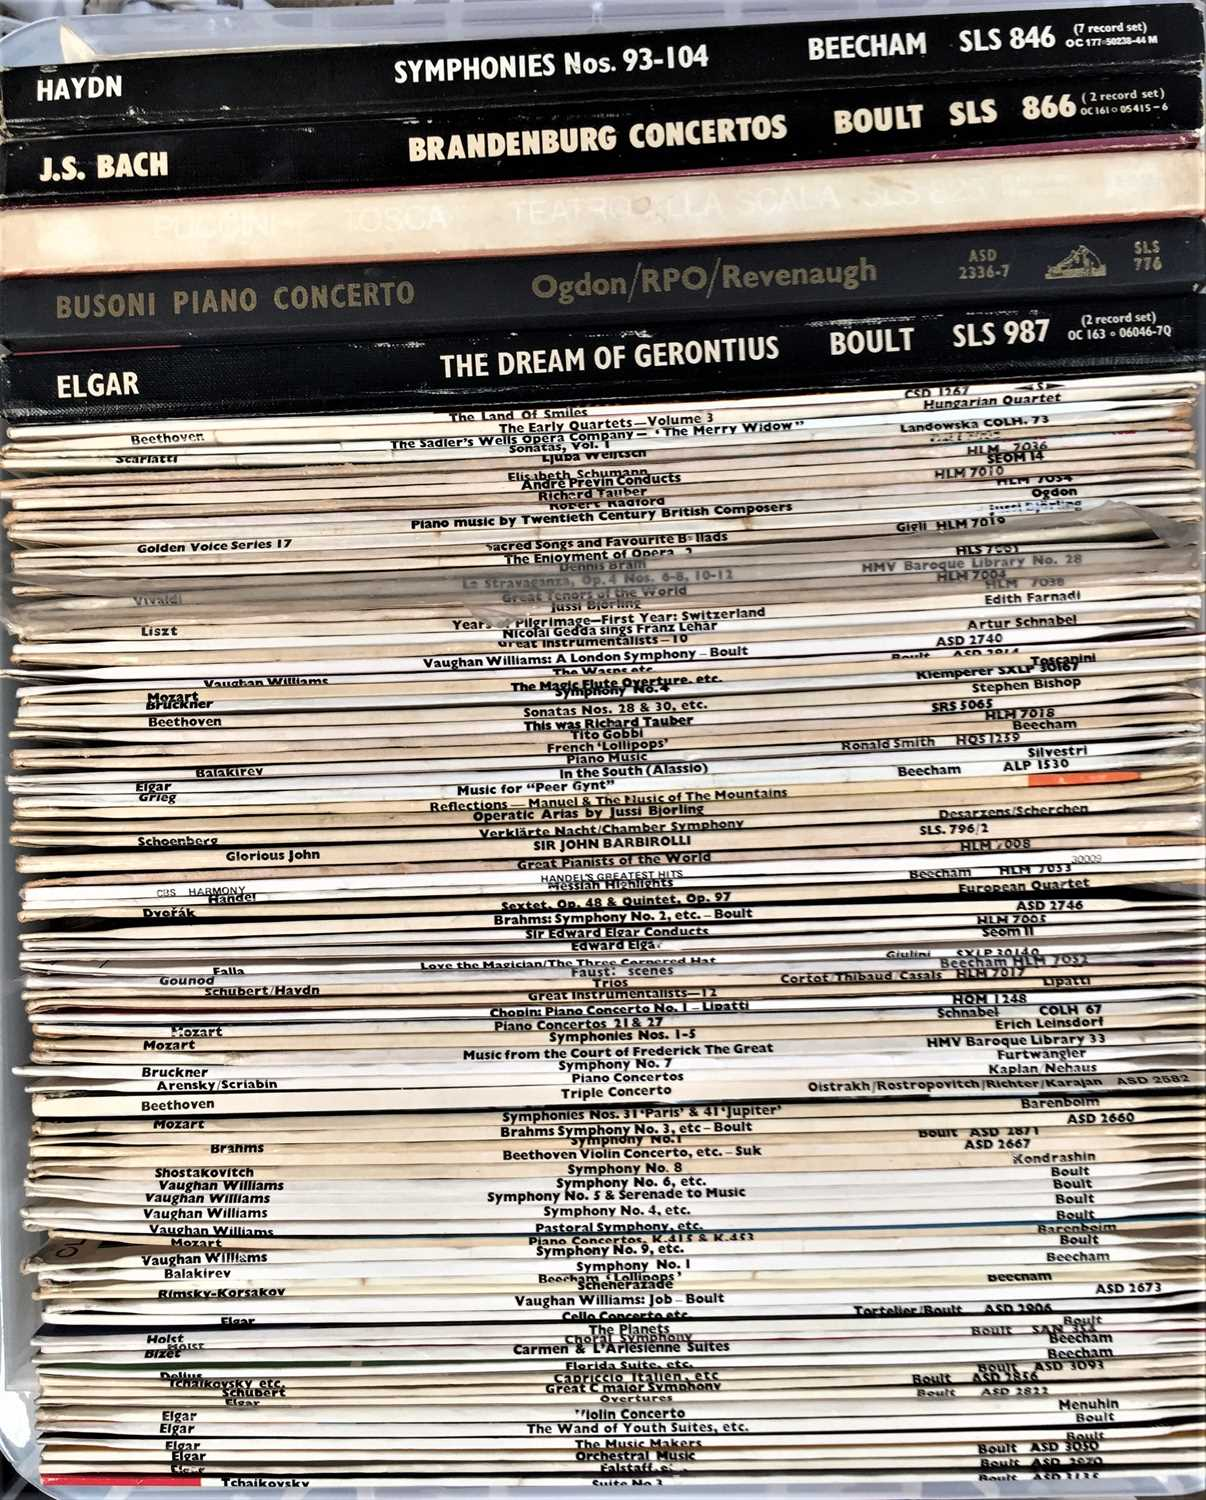 CLASSICAL - LP COLLECTION - Image 7 of 7